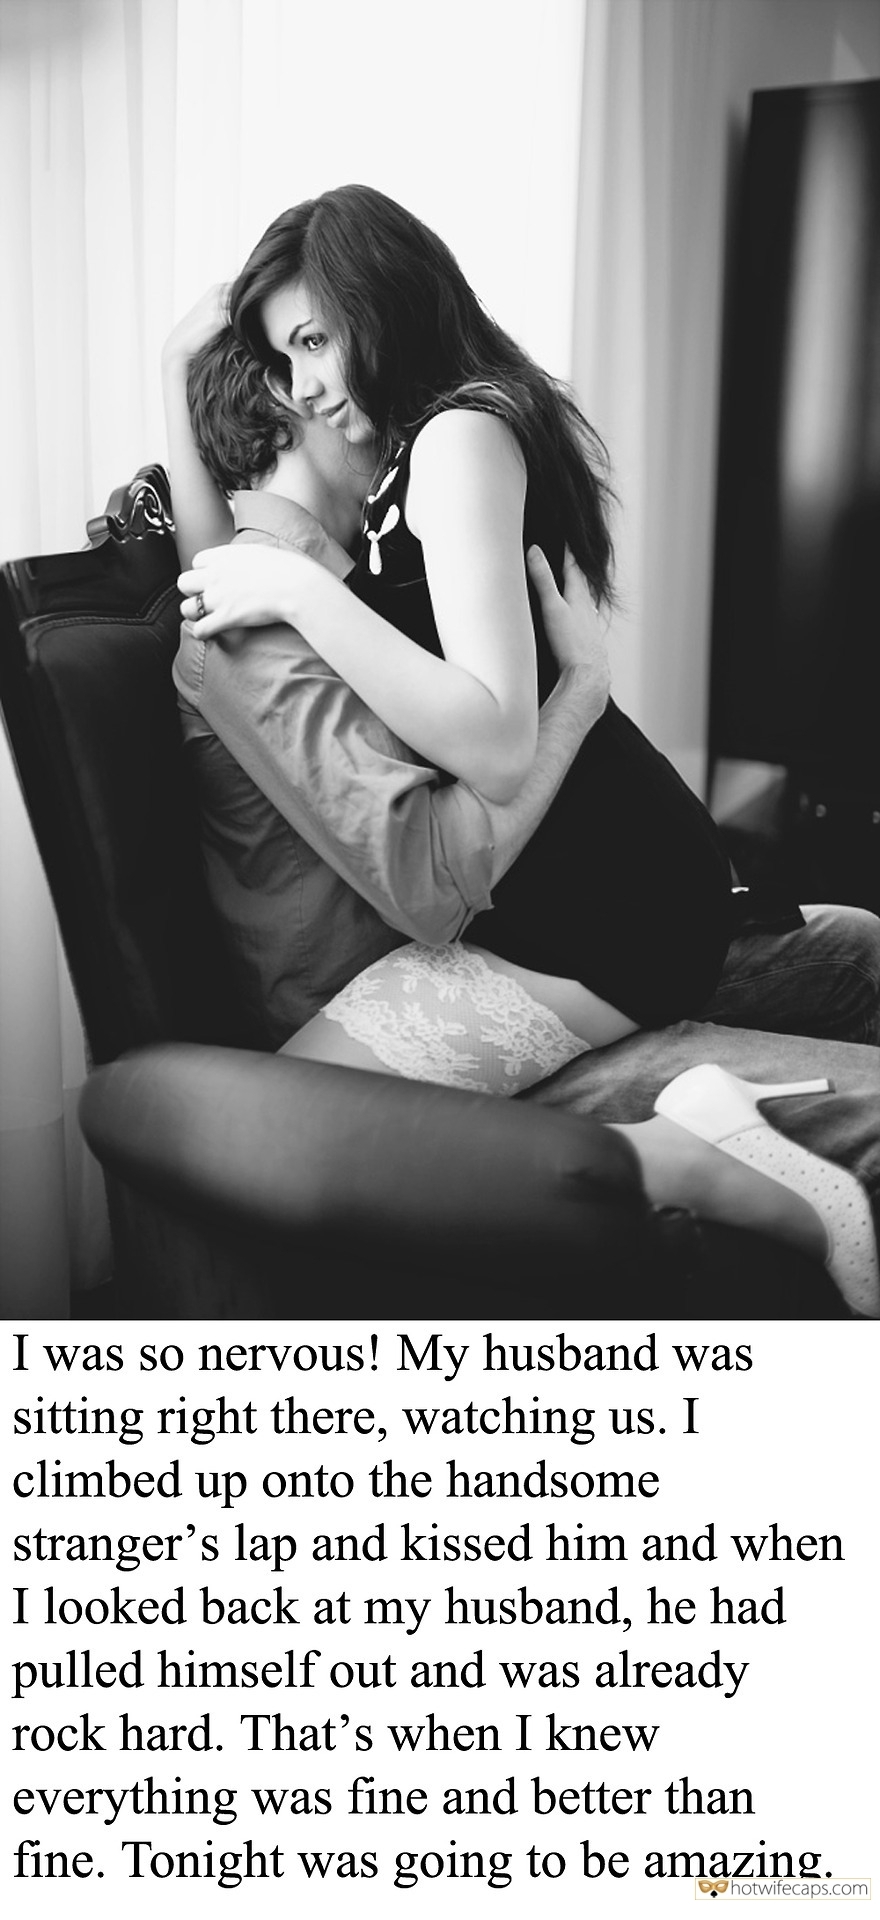 Wife Sharing SFW Caps Cuckold Stories  hotwife caption: I was so nervous! My husband was sitting right there, watching us. I climbed up onto the handsome stranger's lap and kissed him and when I looked back at my husband, he had pulled himself out and was already rock...